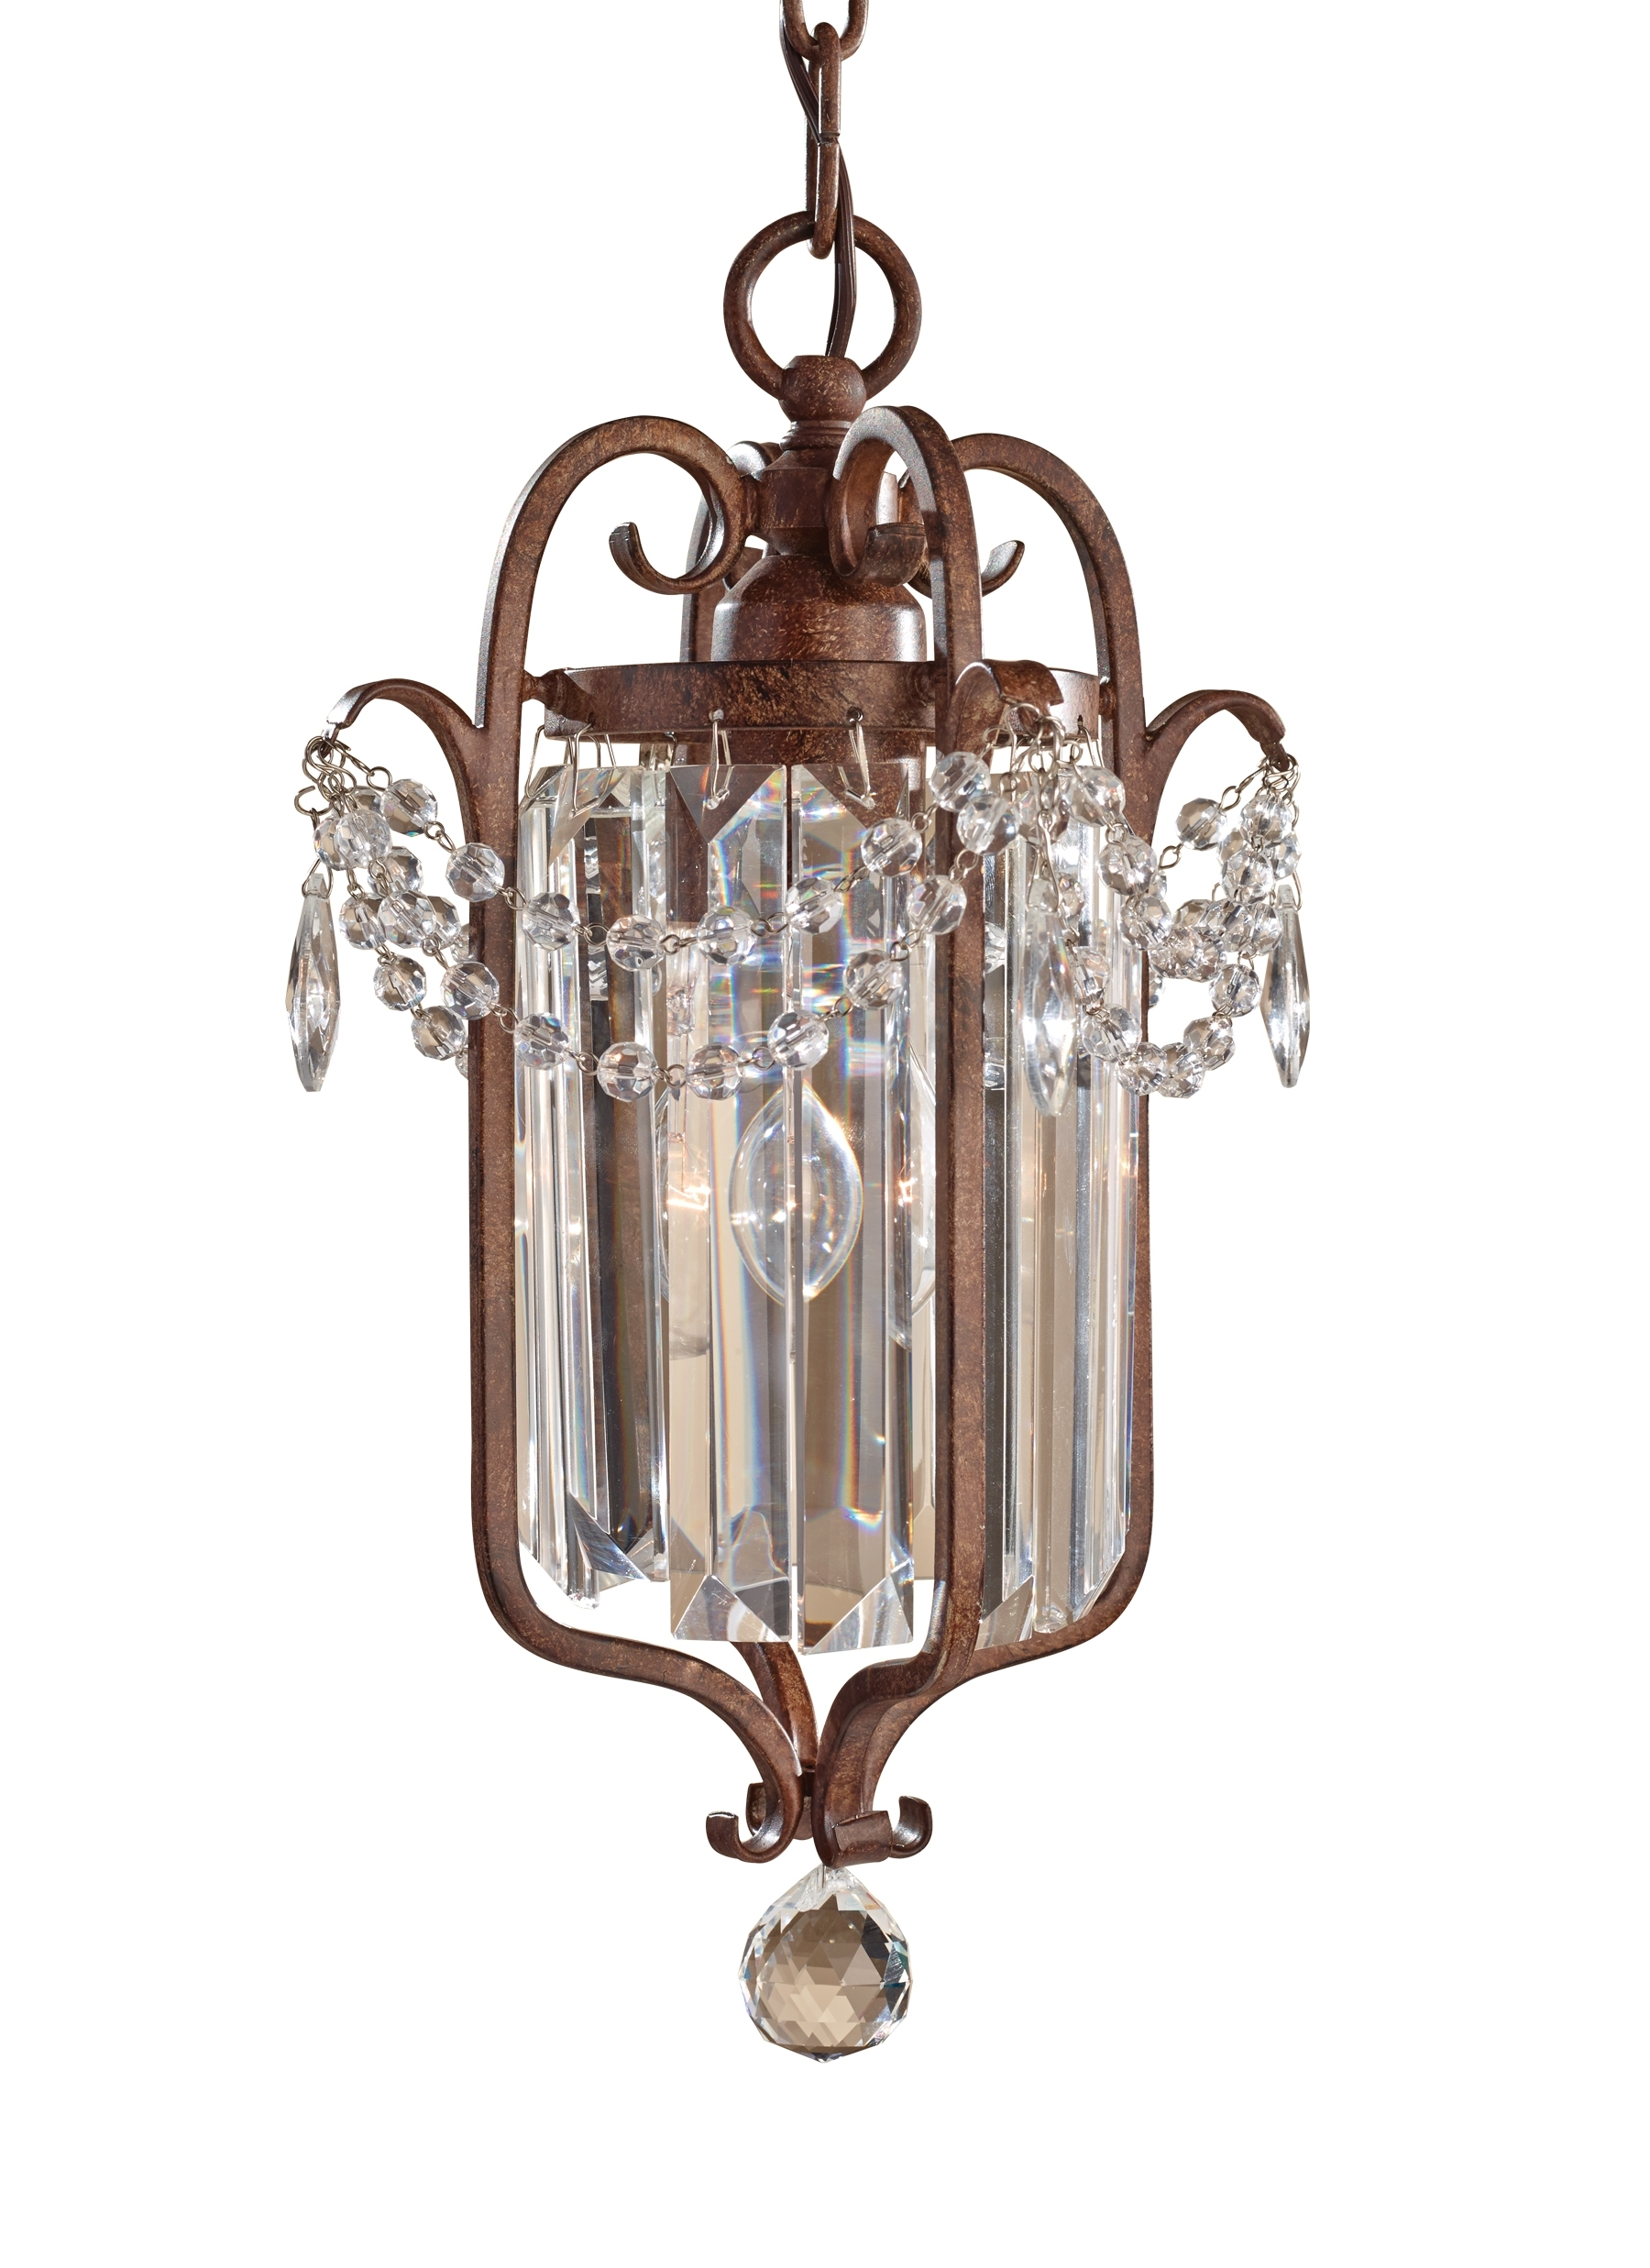 Fashionable F2474/1Mbz,1 – Light Mini Duo Chandelier,mocha Bronze For Gianna Mini Chandeliers (View 7 of 20)